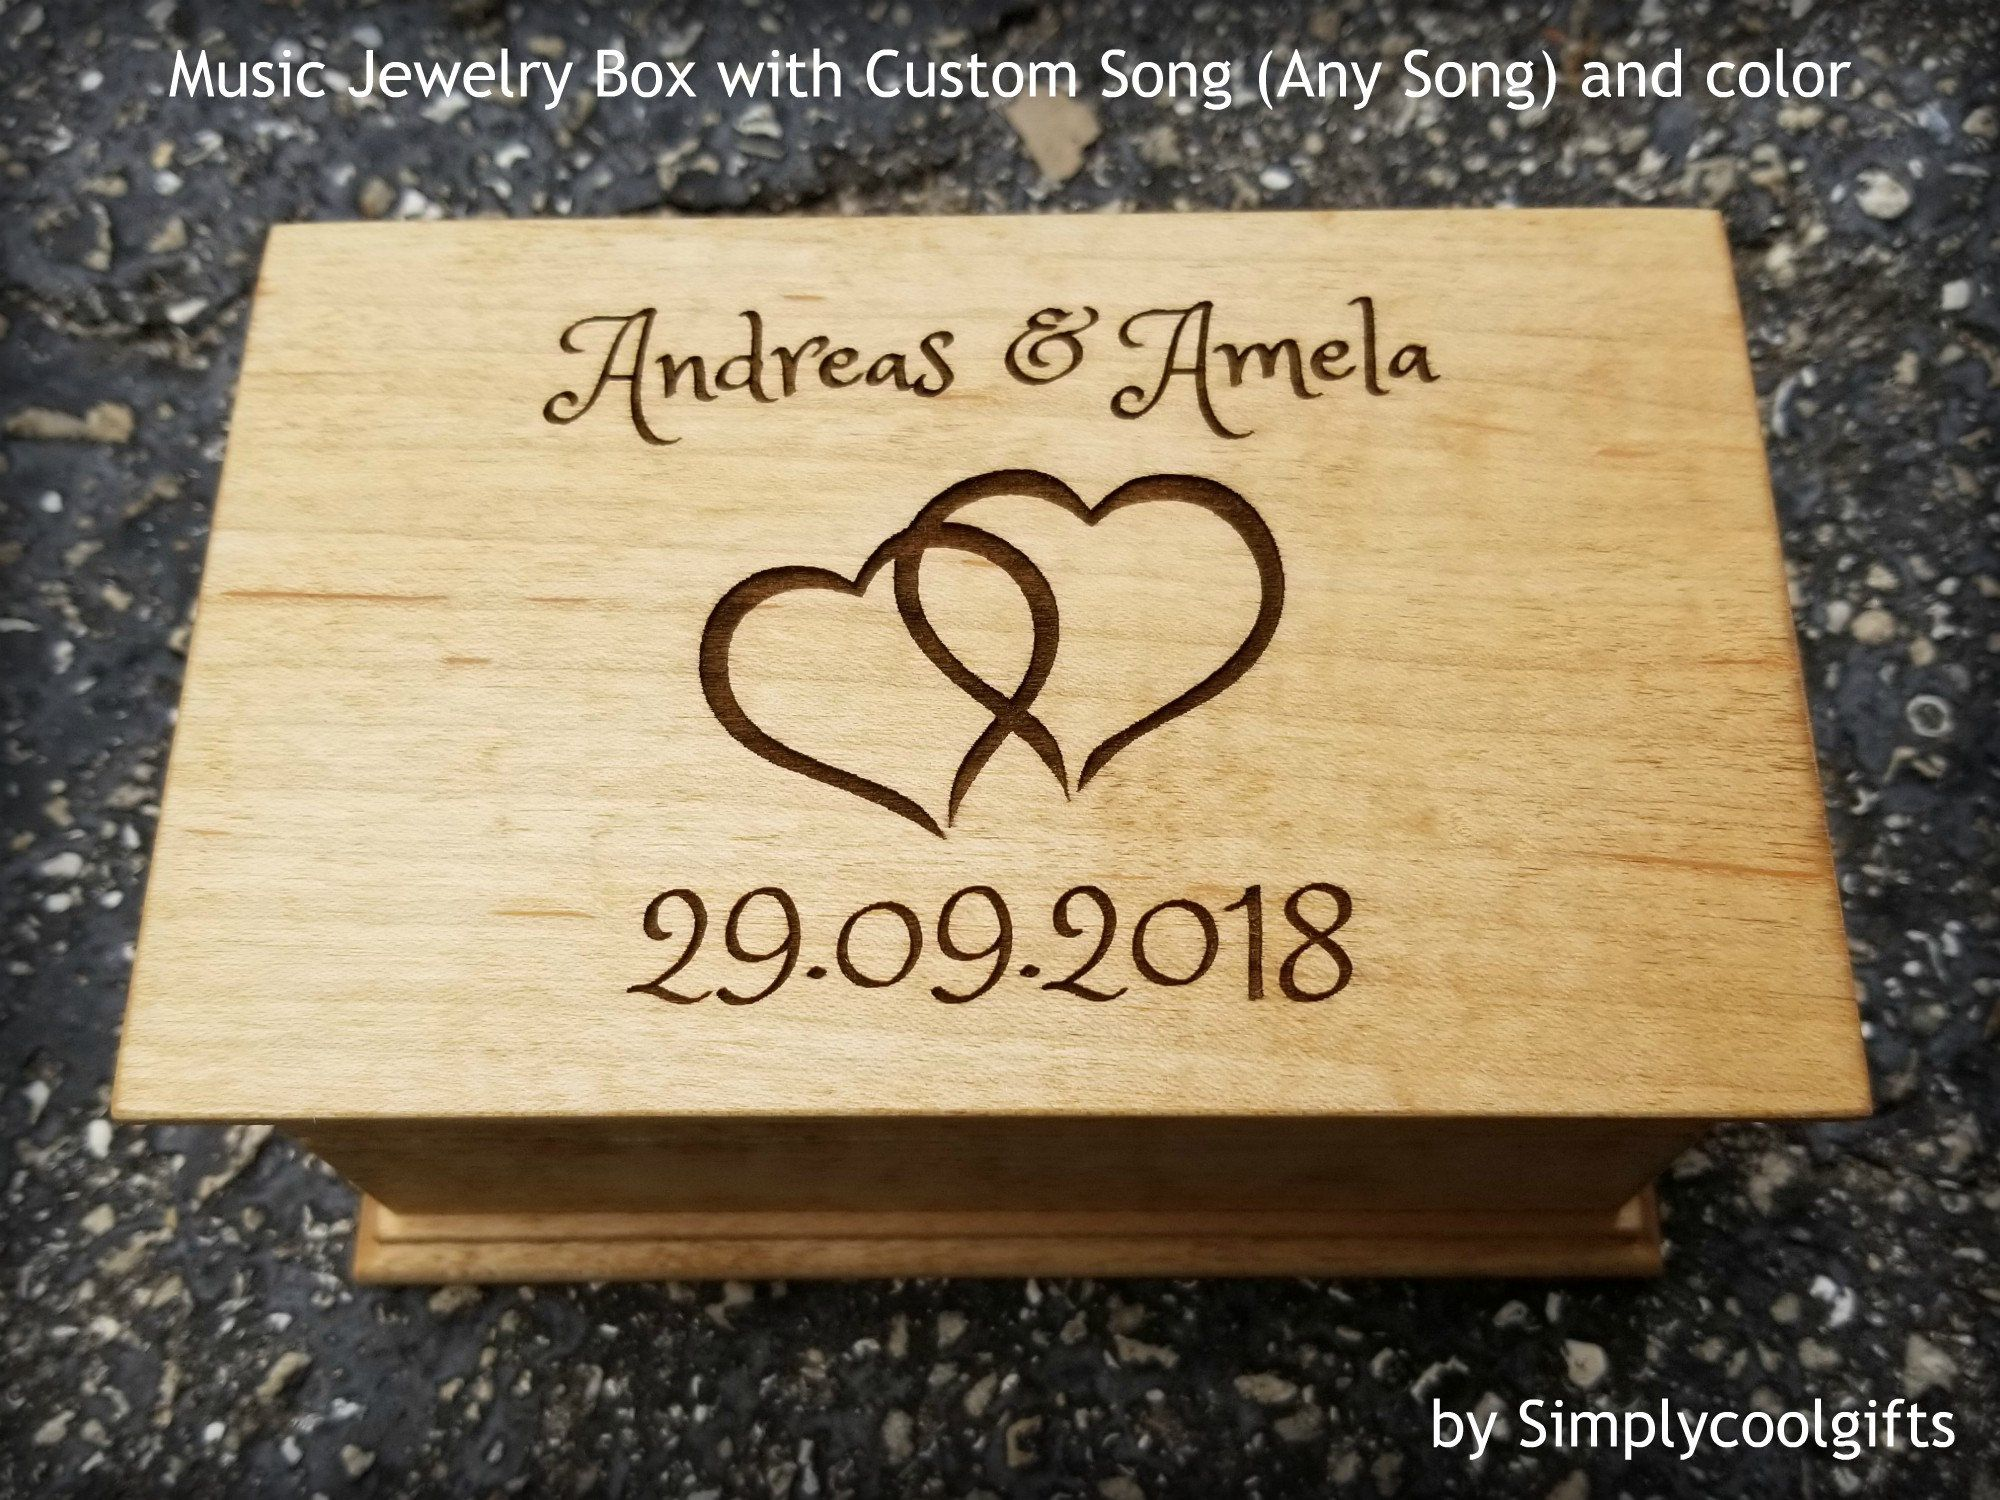 32++ Jewelry box with custom song information